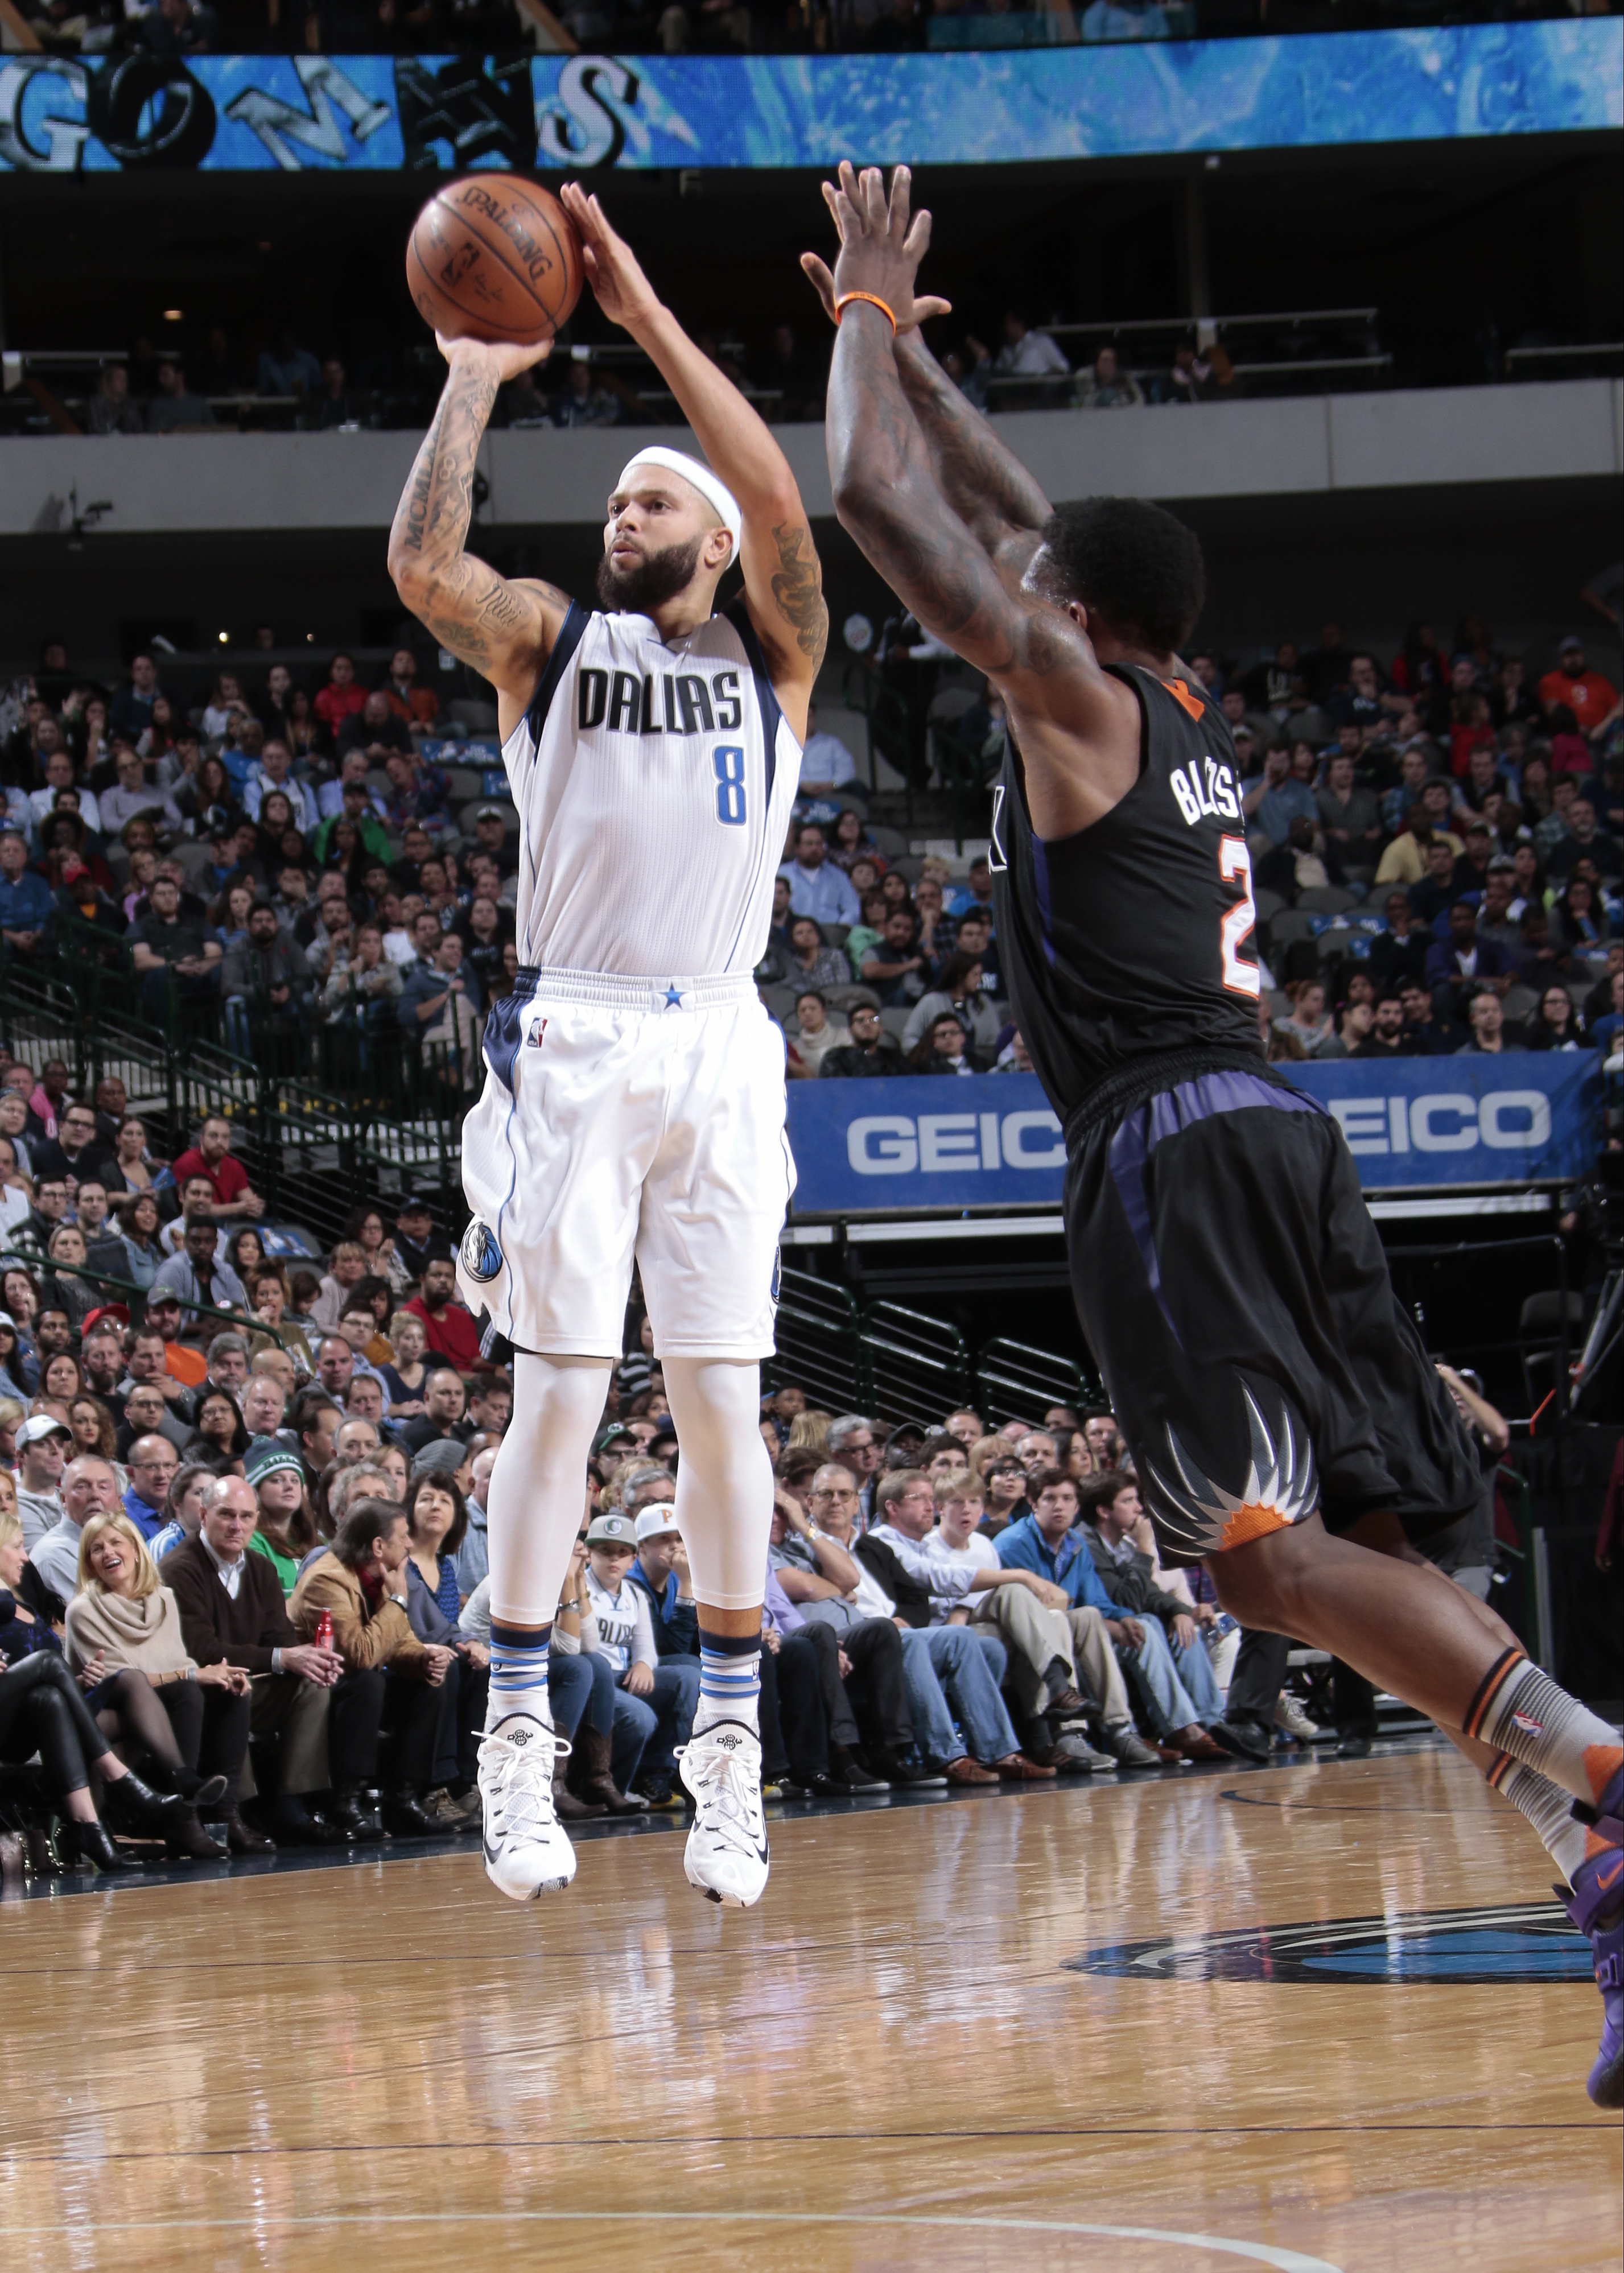 DALLAS, TX - DECEMBER 14: Deron Williams #8 of the Dallas Mavericks shoots the ball during the game against the Phoenix Suns on December 14, 2015 at the American Airlines Center in Dallas, Texas. (Photo by Danny Bollinger/NBAE via Getty Images)